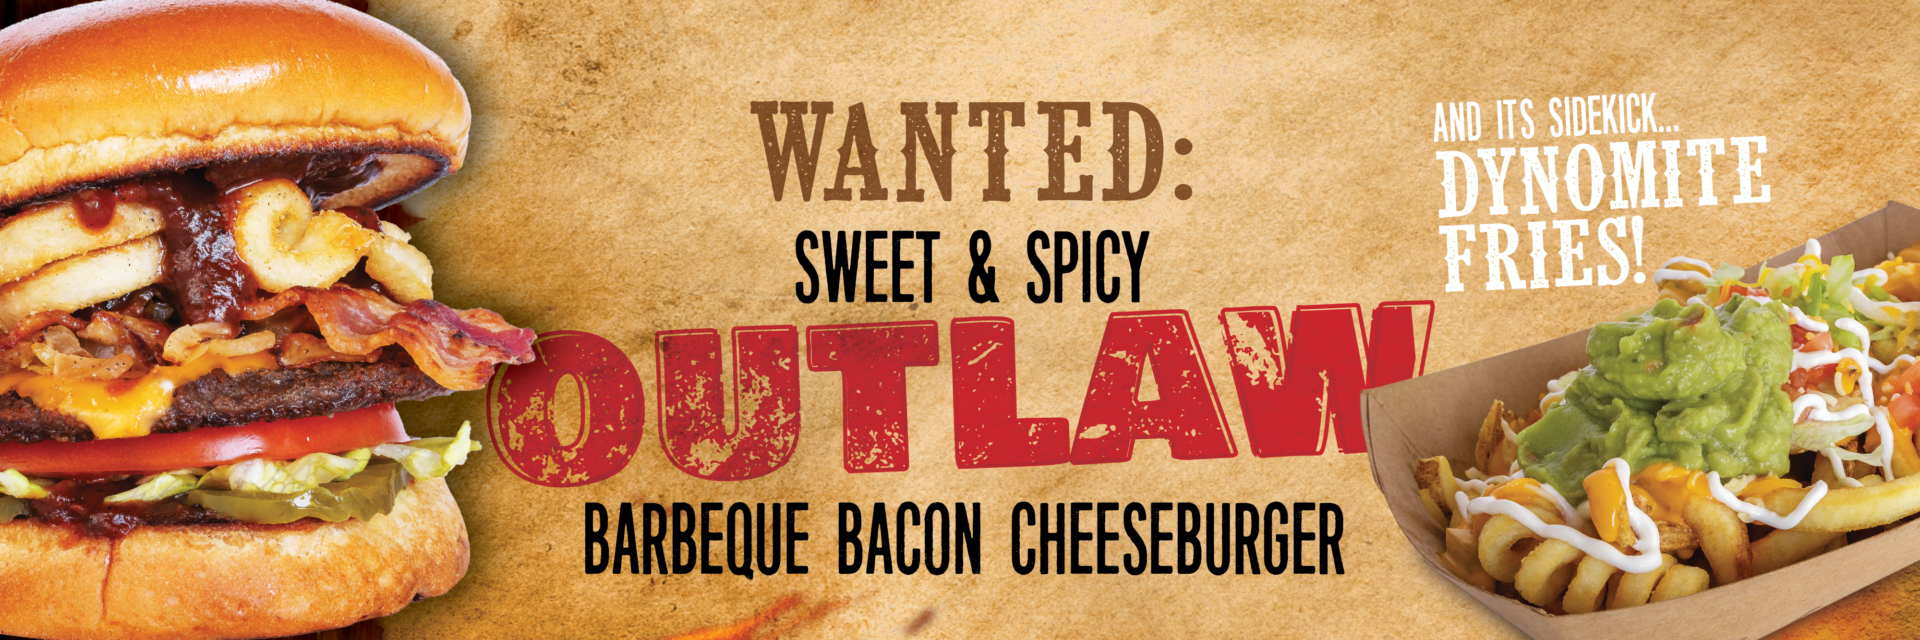 Twisters Burgers & Burritos - New Mexico and Colorado - Outlaw BBQ Bacon Cheeseburger